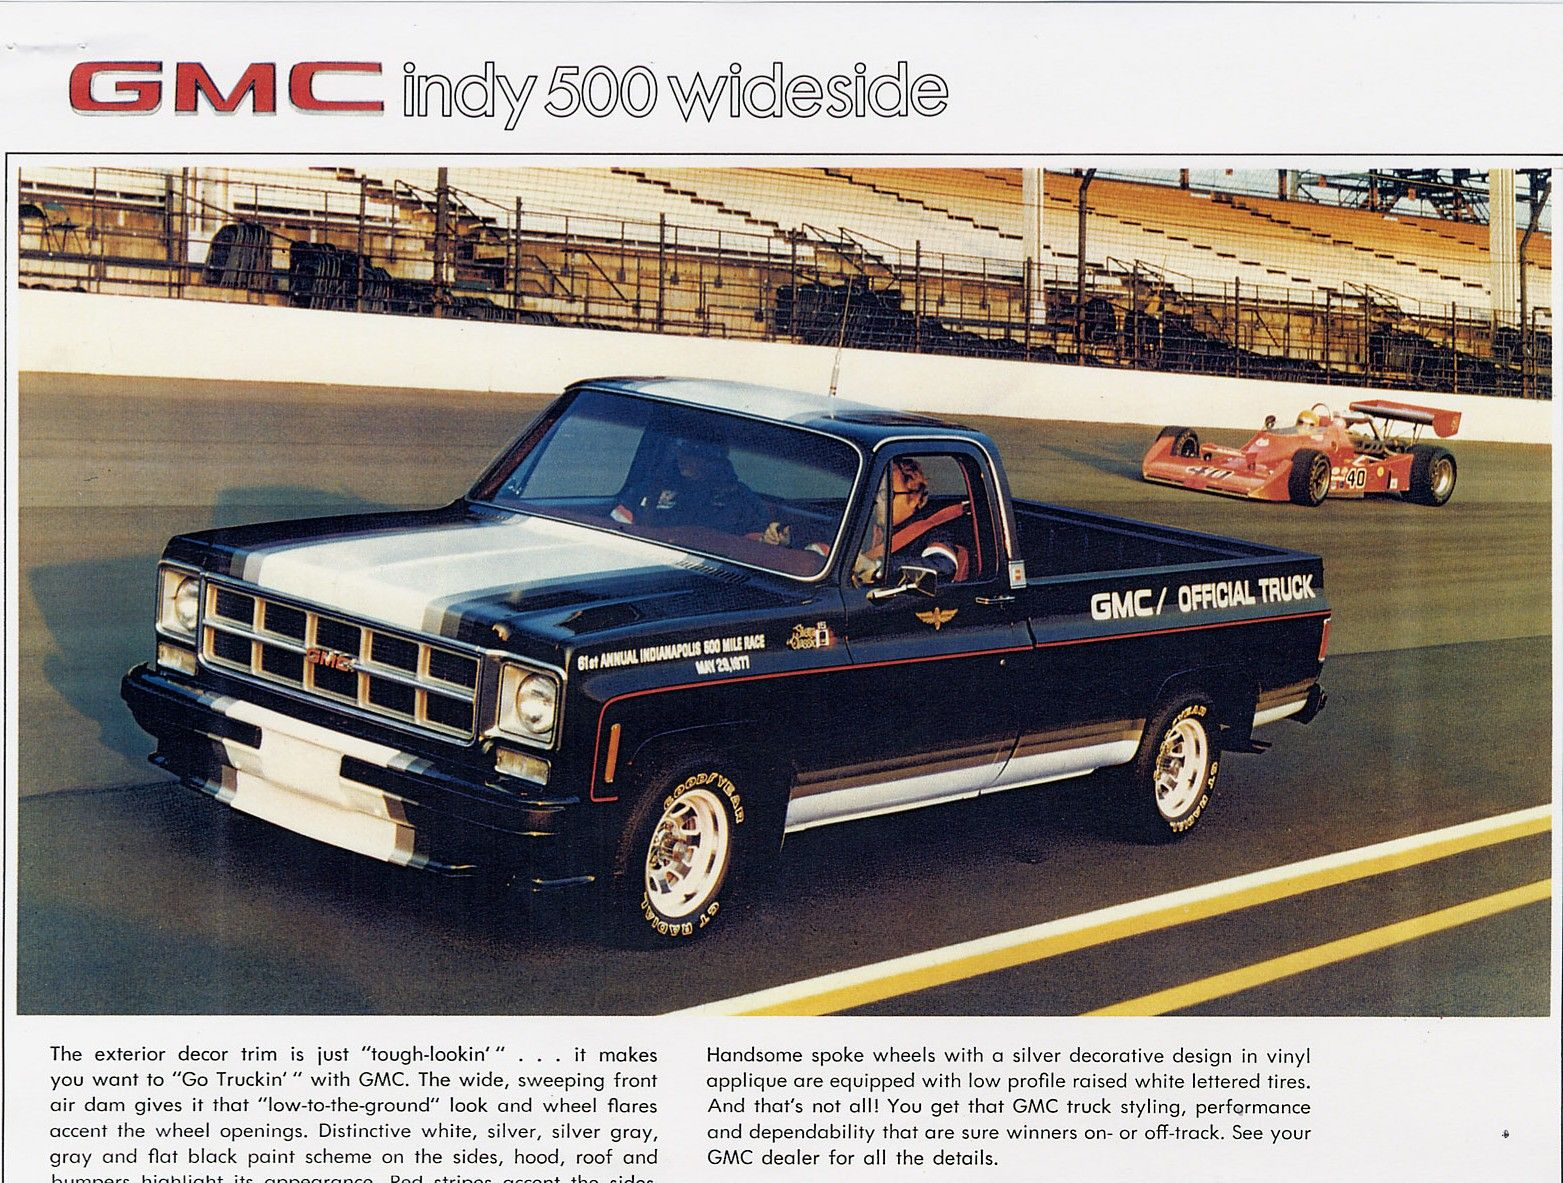 1977 gmc indy 500 wideside limited edition pickup